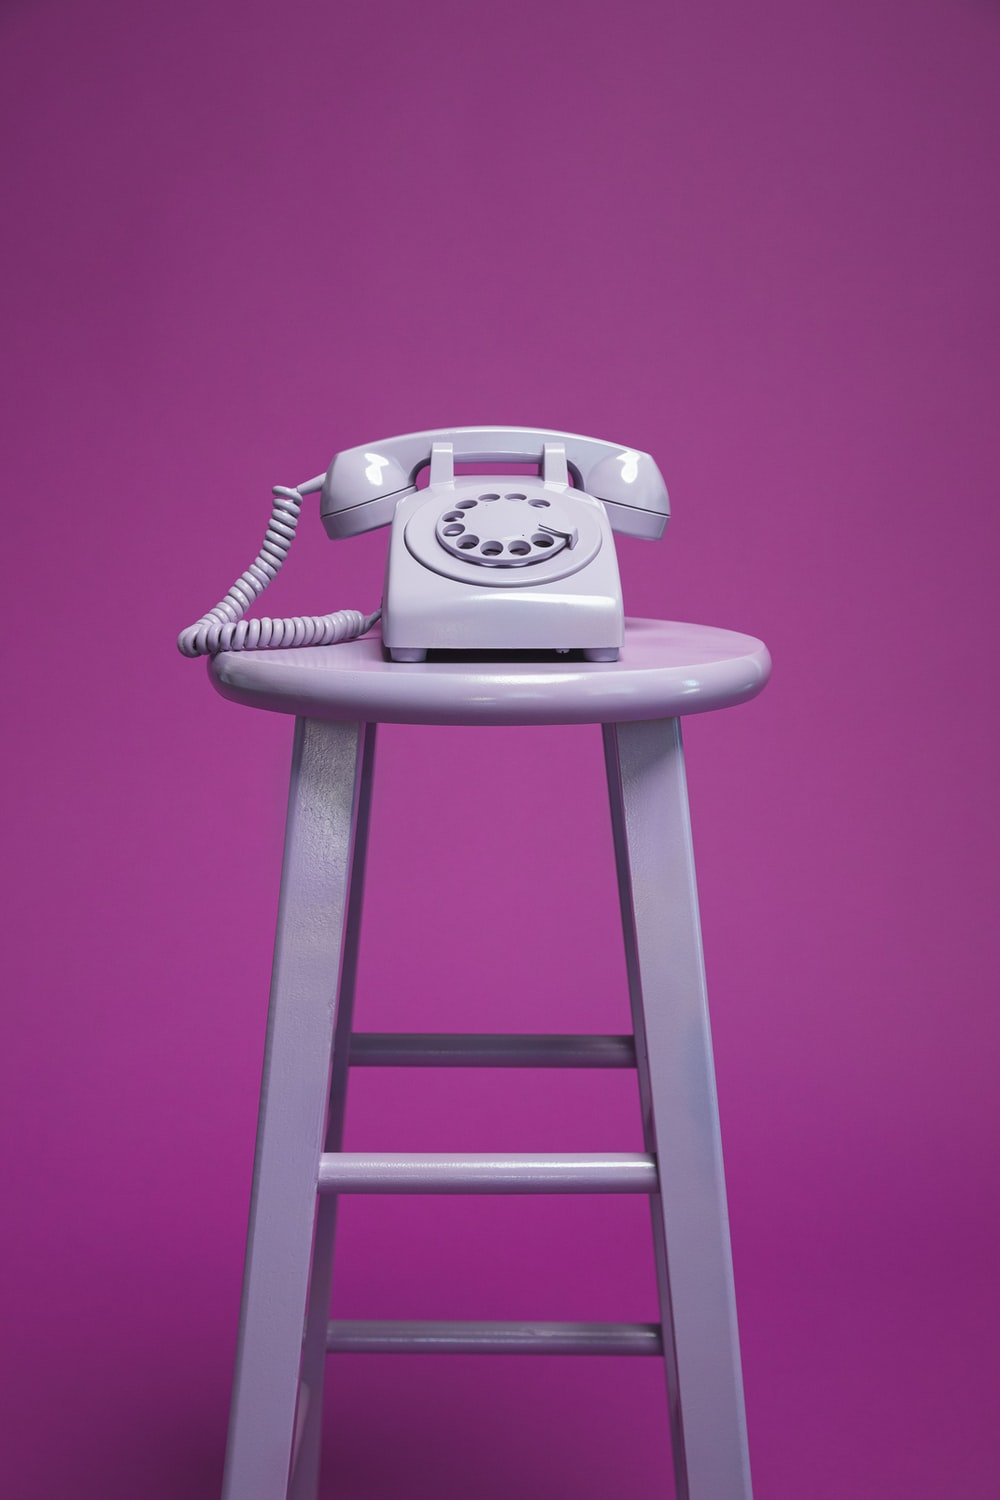 purple rotary telephone